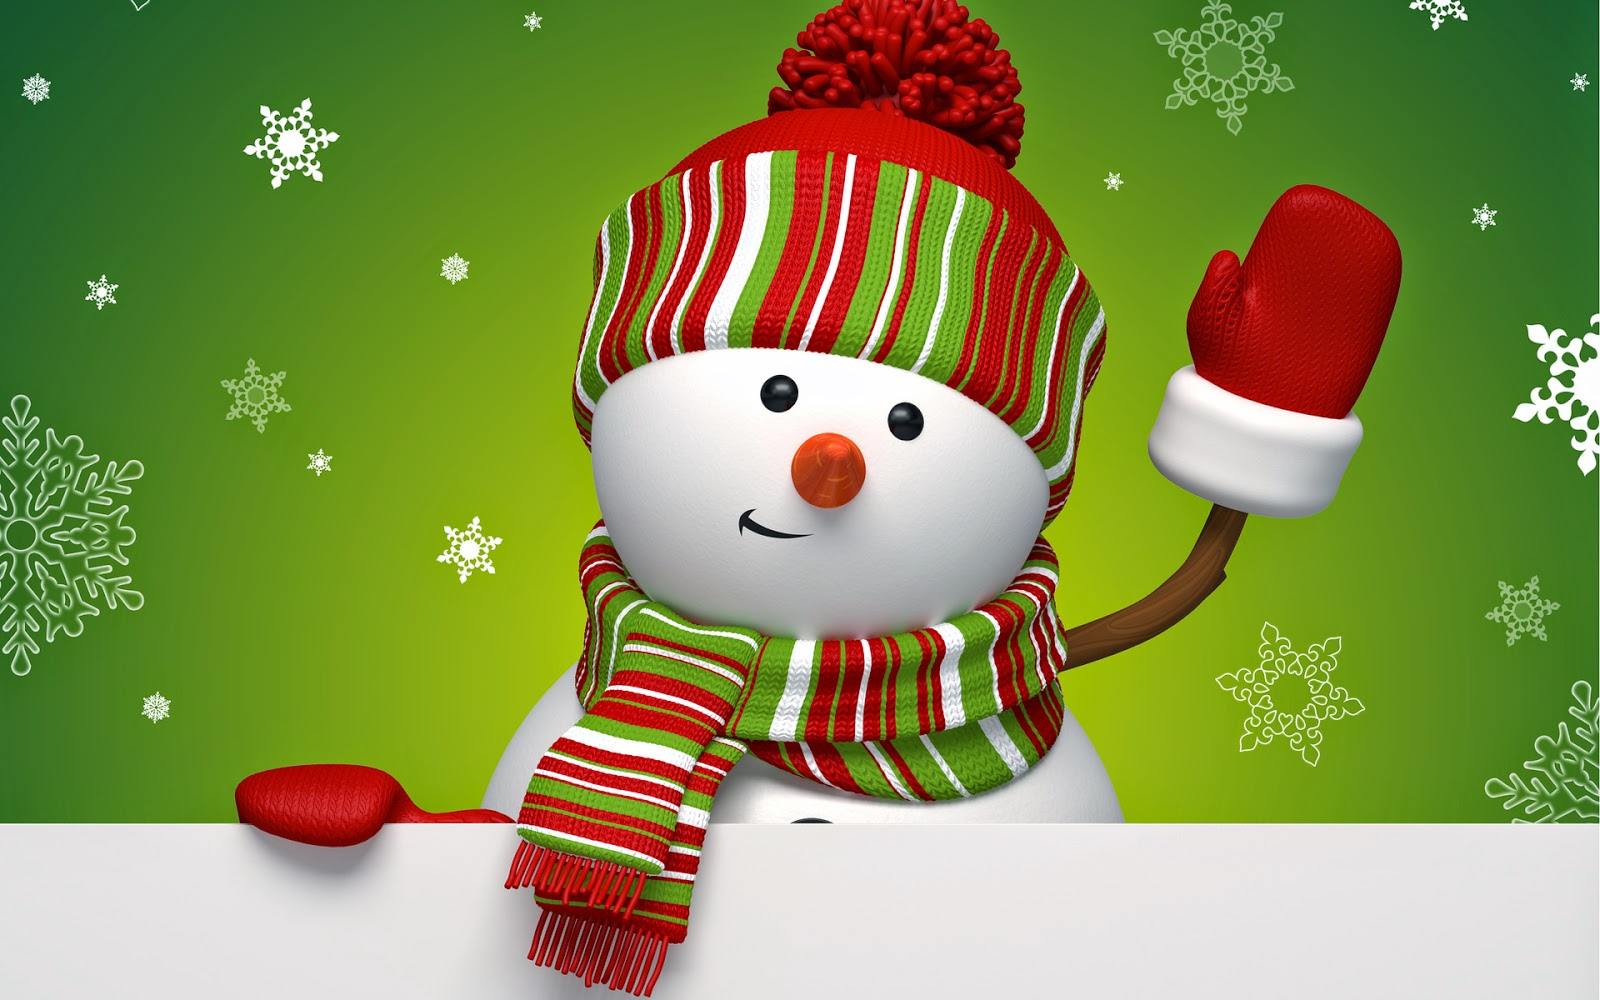 Snowman-with-green-background-snowflakes-cartoon-clipart-images-wallpaper.jpg